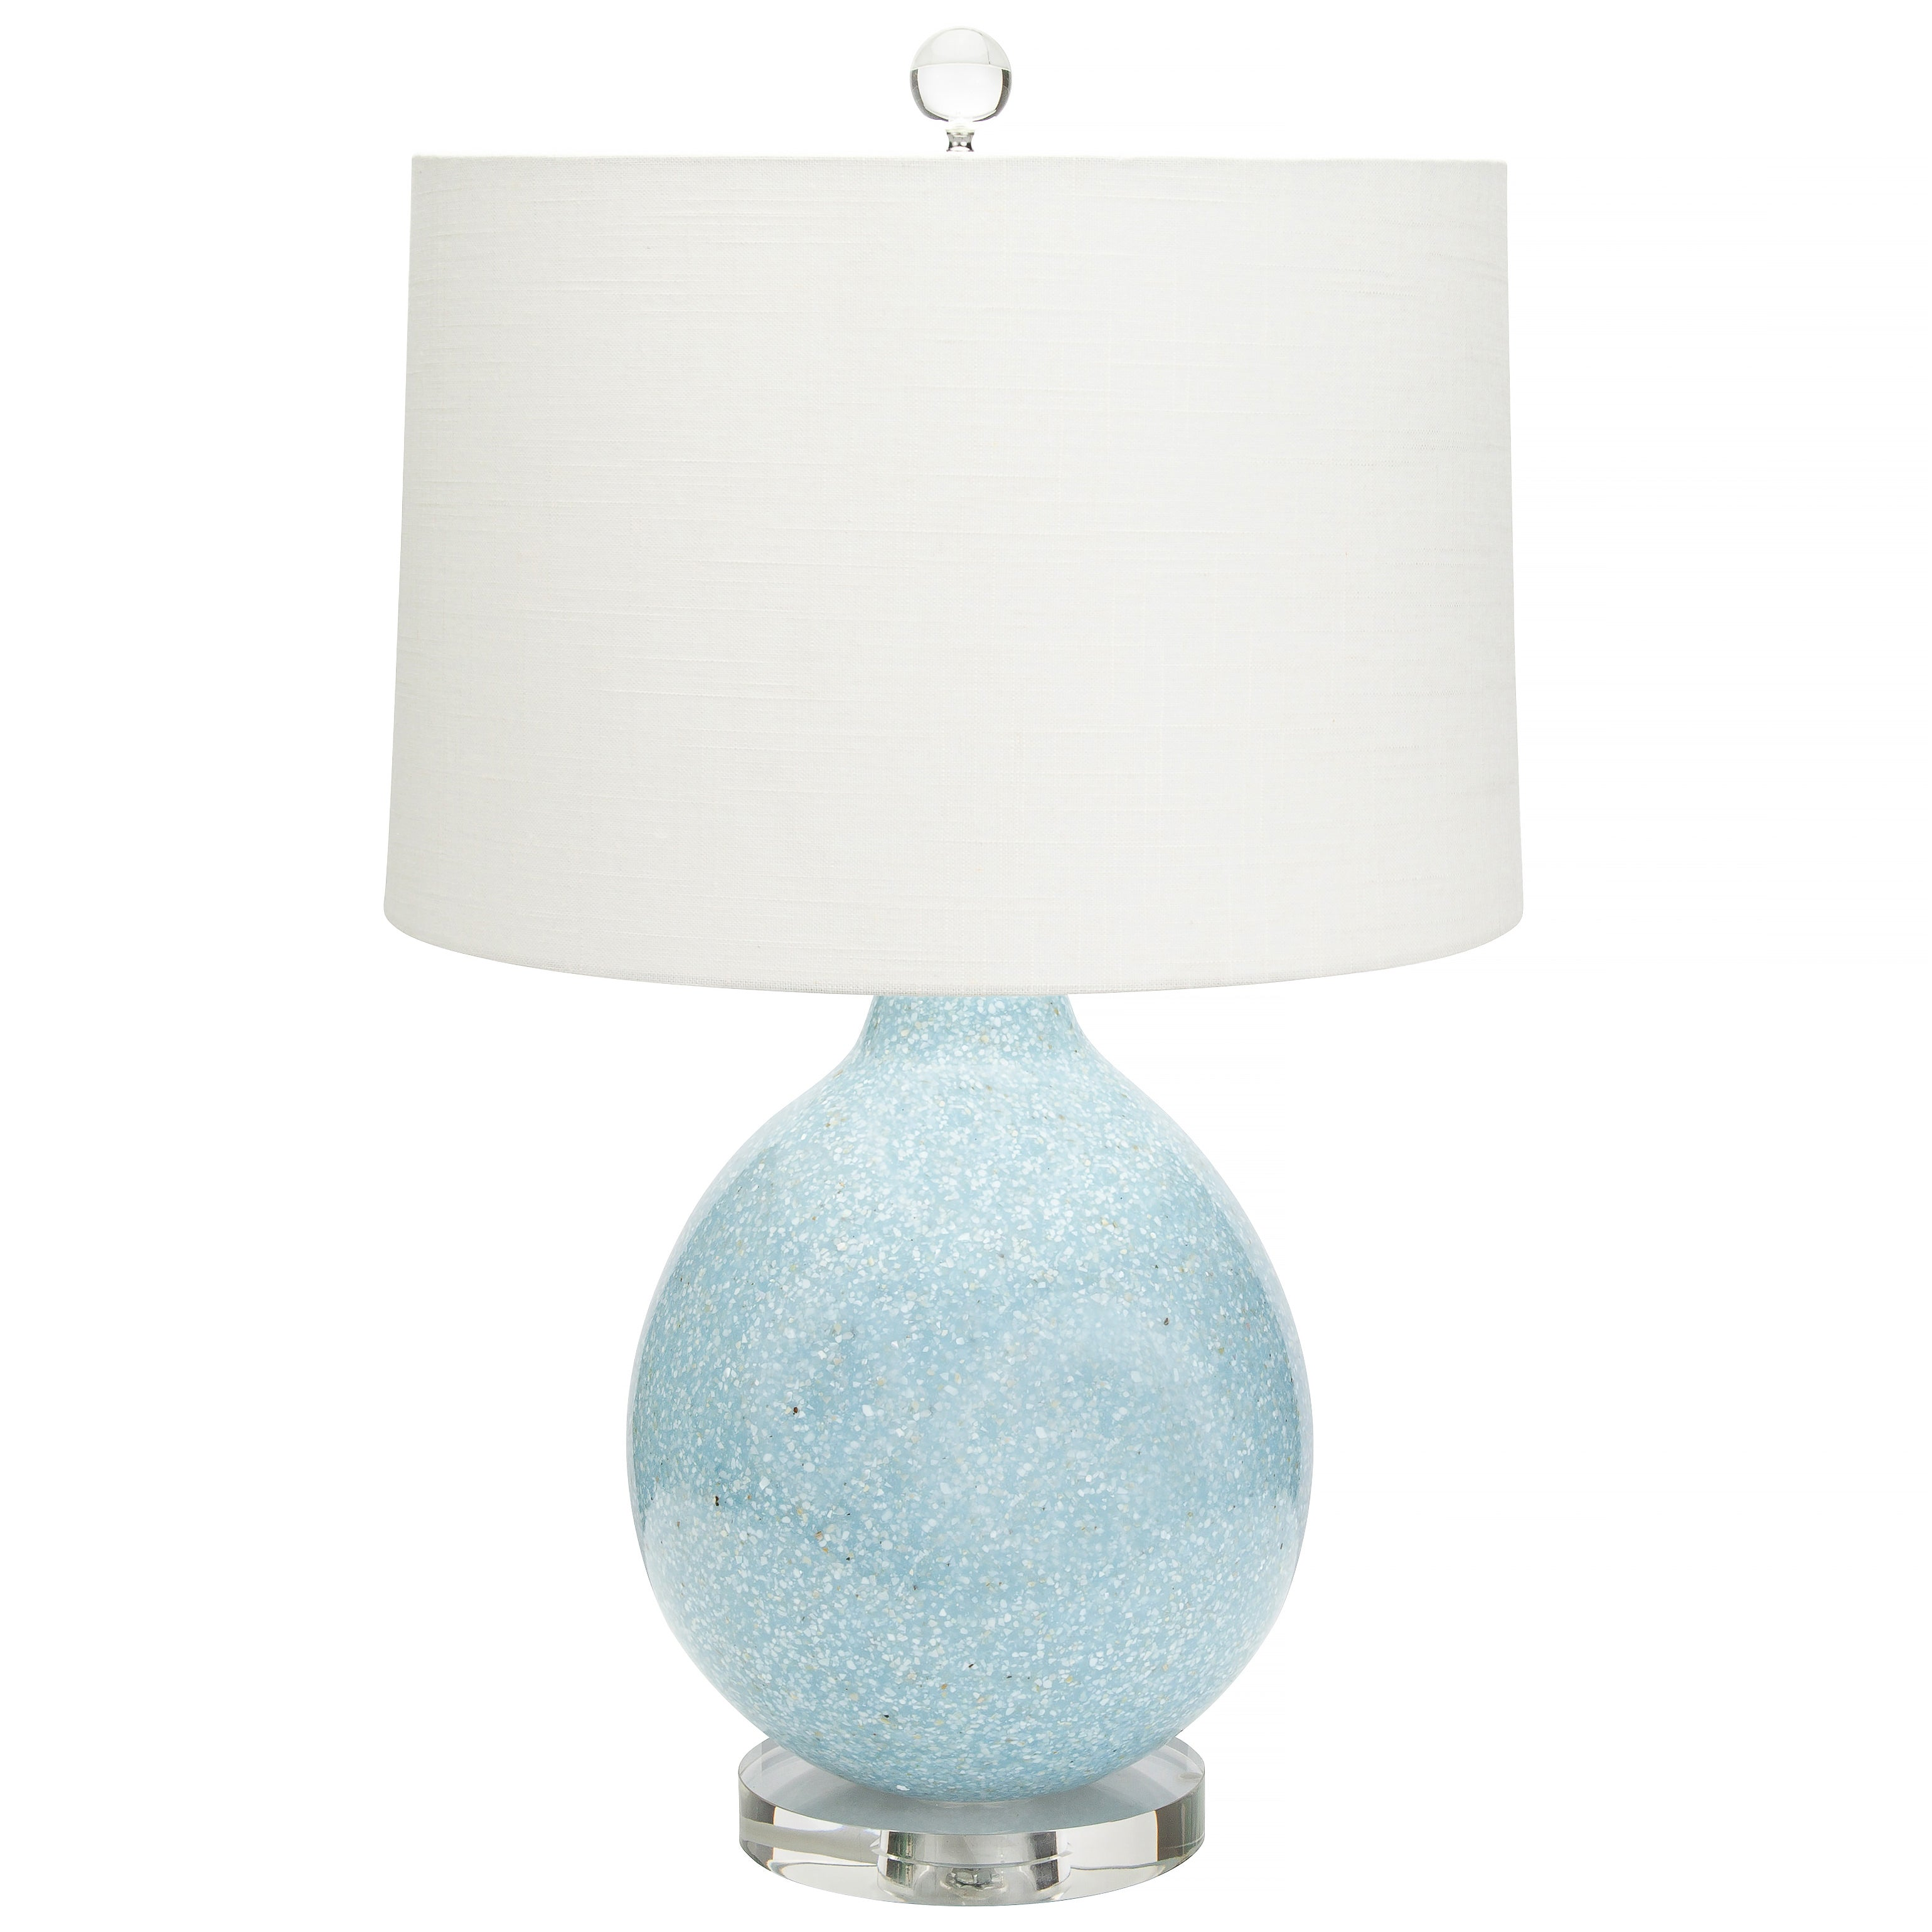 Tilly Table Lamp, Blue - Couture Lamps